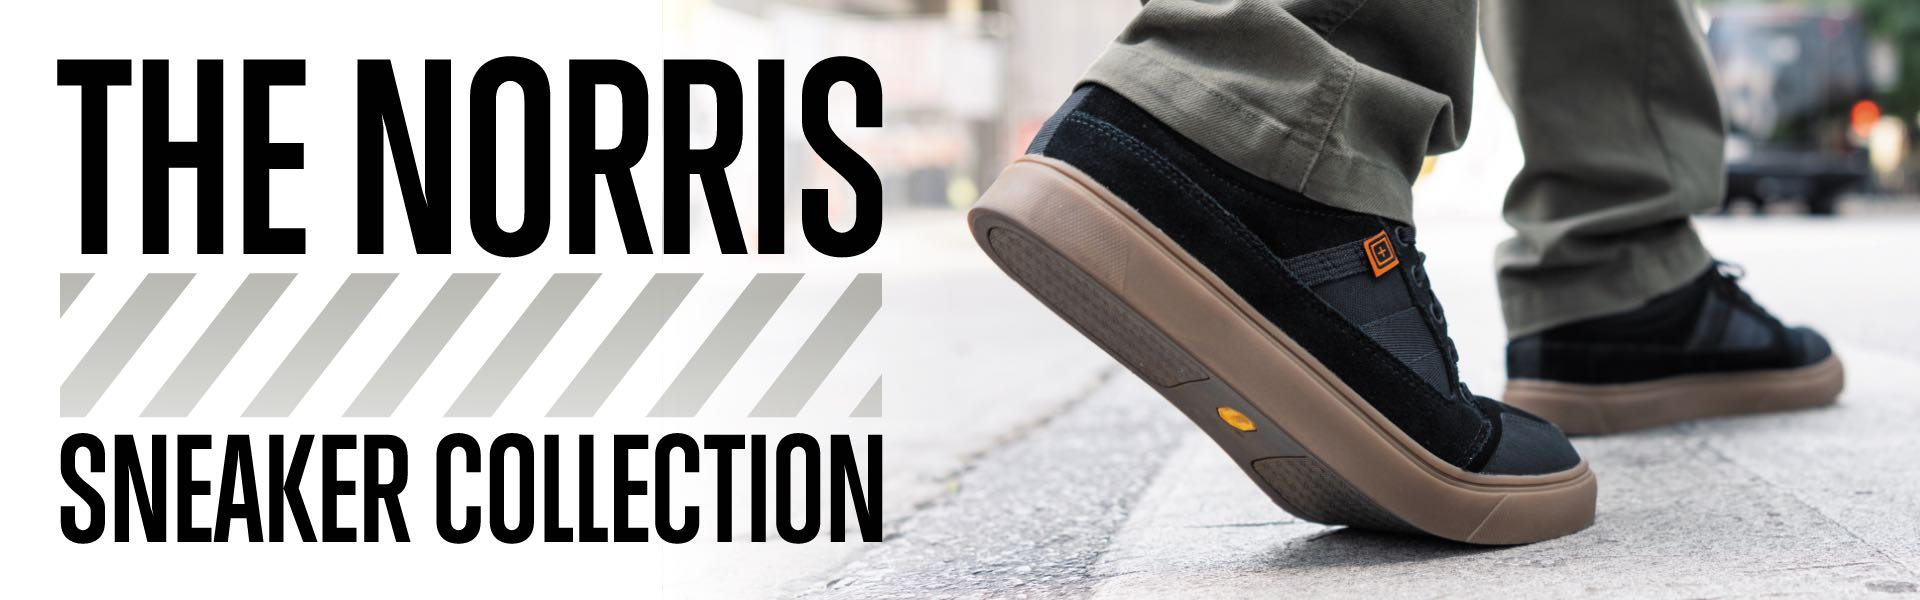 THE NORRIS SNEAKER COLLECTION | 5.11 NORRIS SNEAKERS